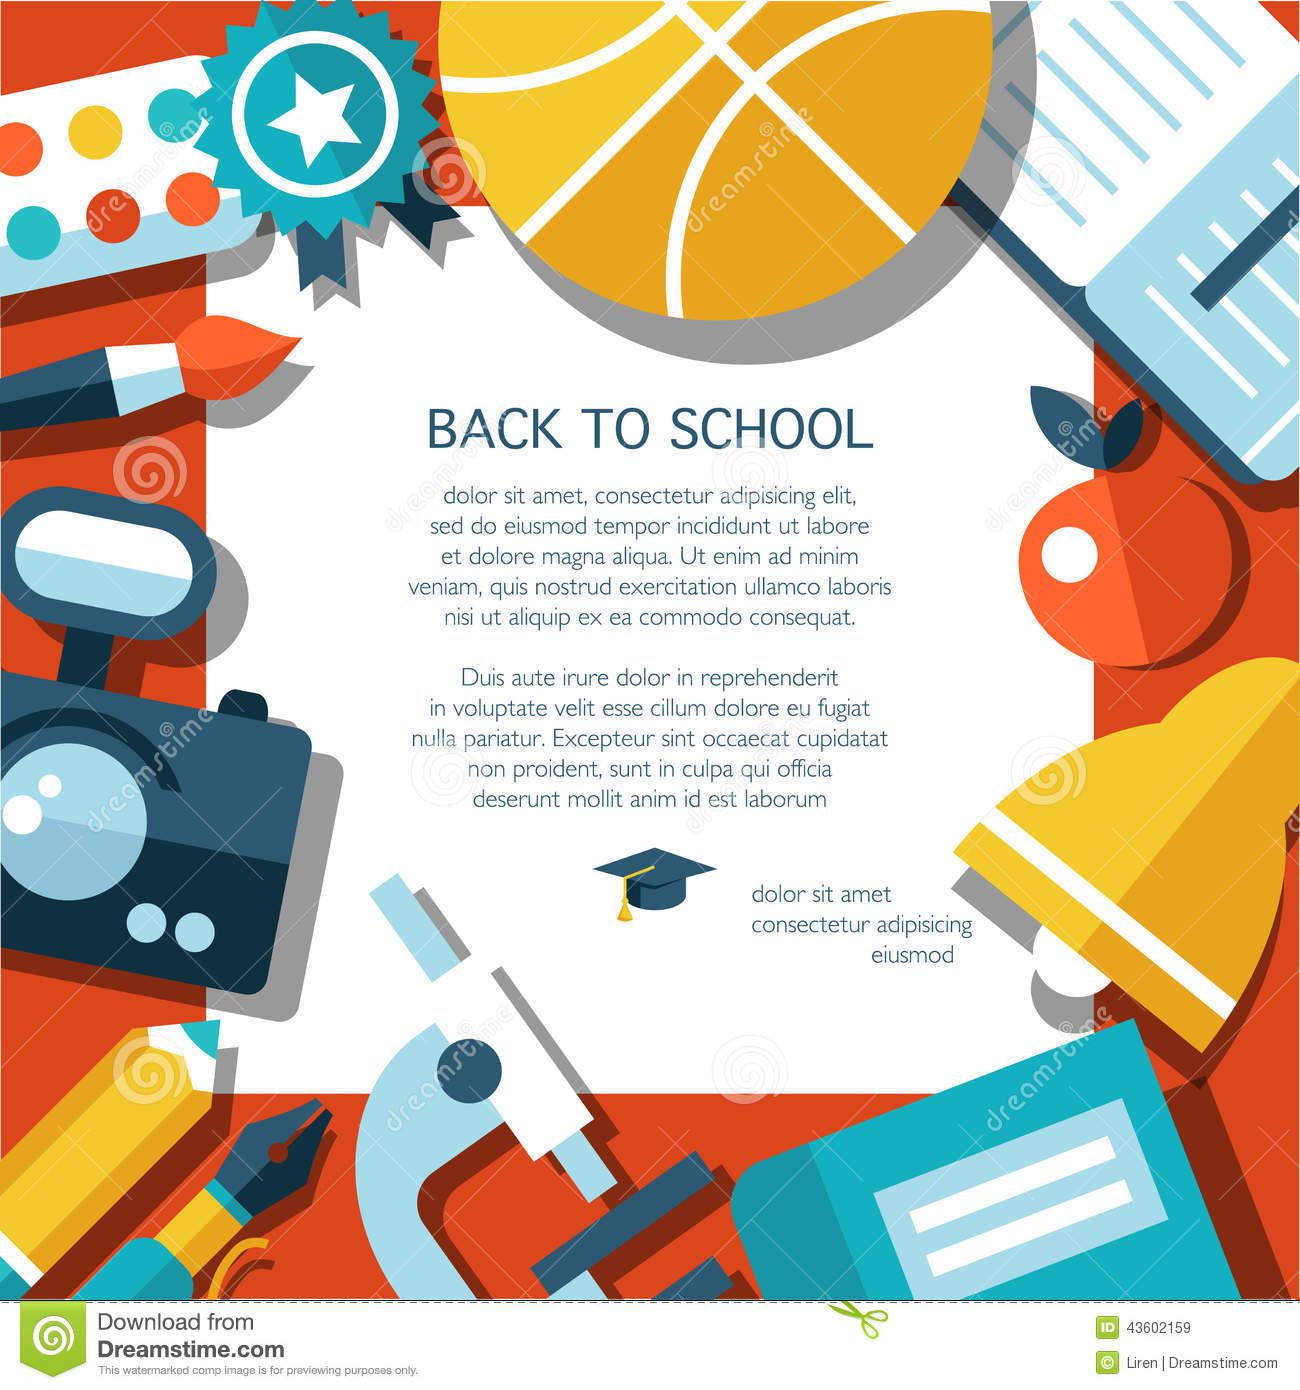 009 Awful Free School Flyer Design Template Highest Quality  Templates Creative Education PosterFull